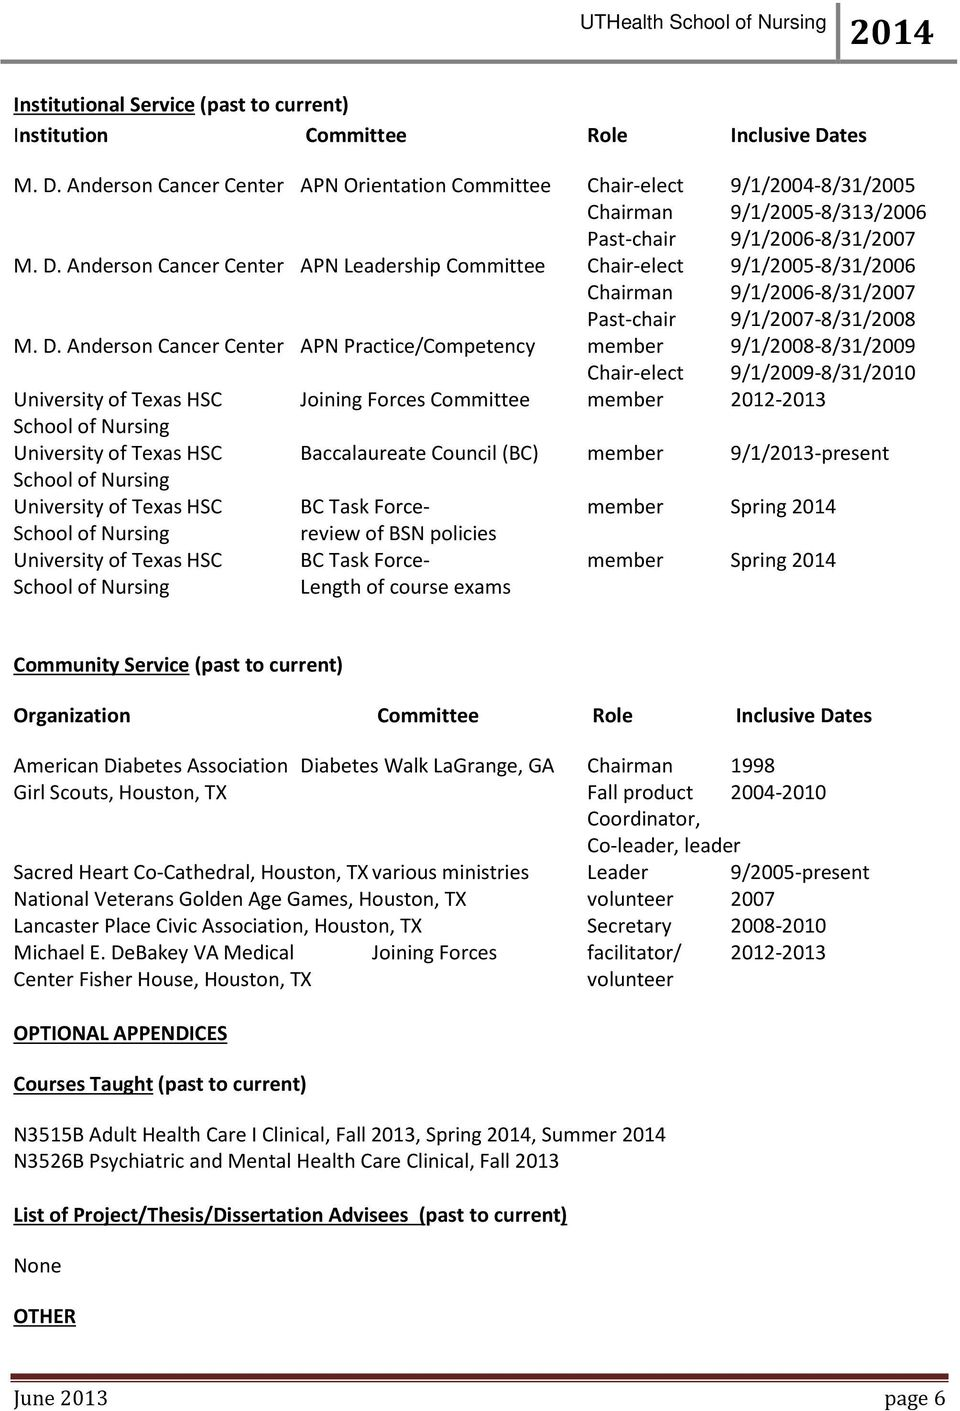 D. Anderson Cancer Center APN Practice/Competency member 9/1/2008-8/31/2009 Chair-elect 9/1/2009-8/31/2010 University of Texas HSC Joining Forces Committee member 2012-2013 University of Texas HSC